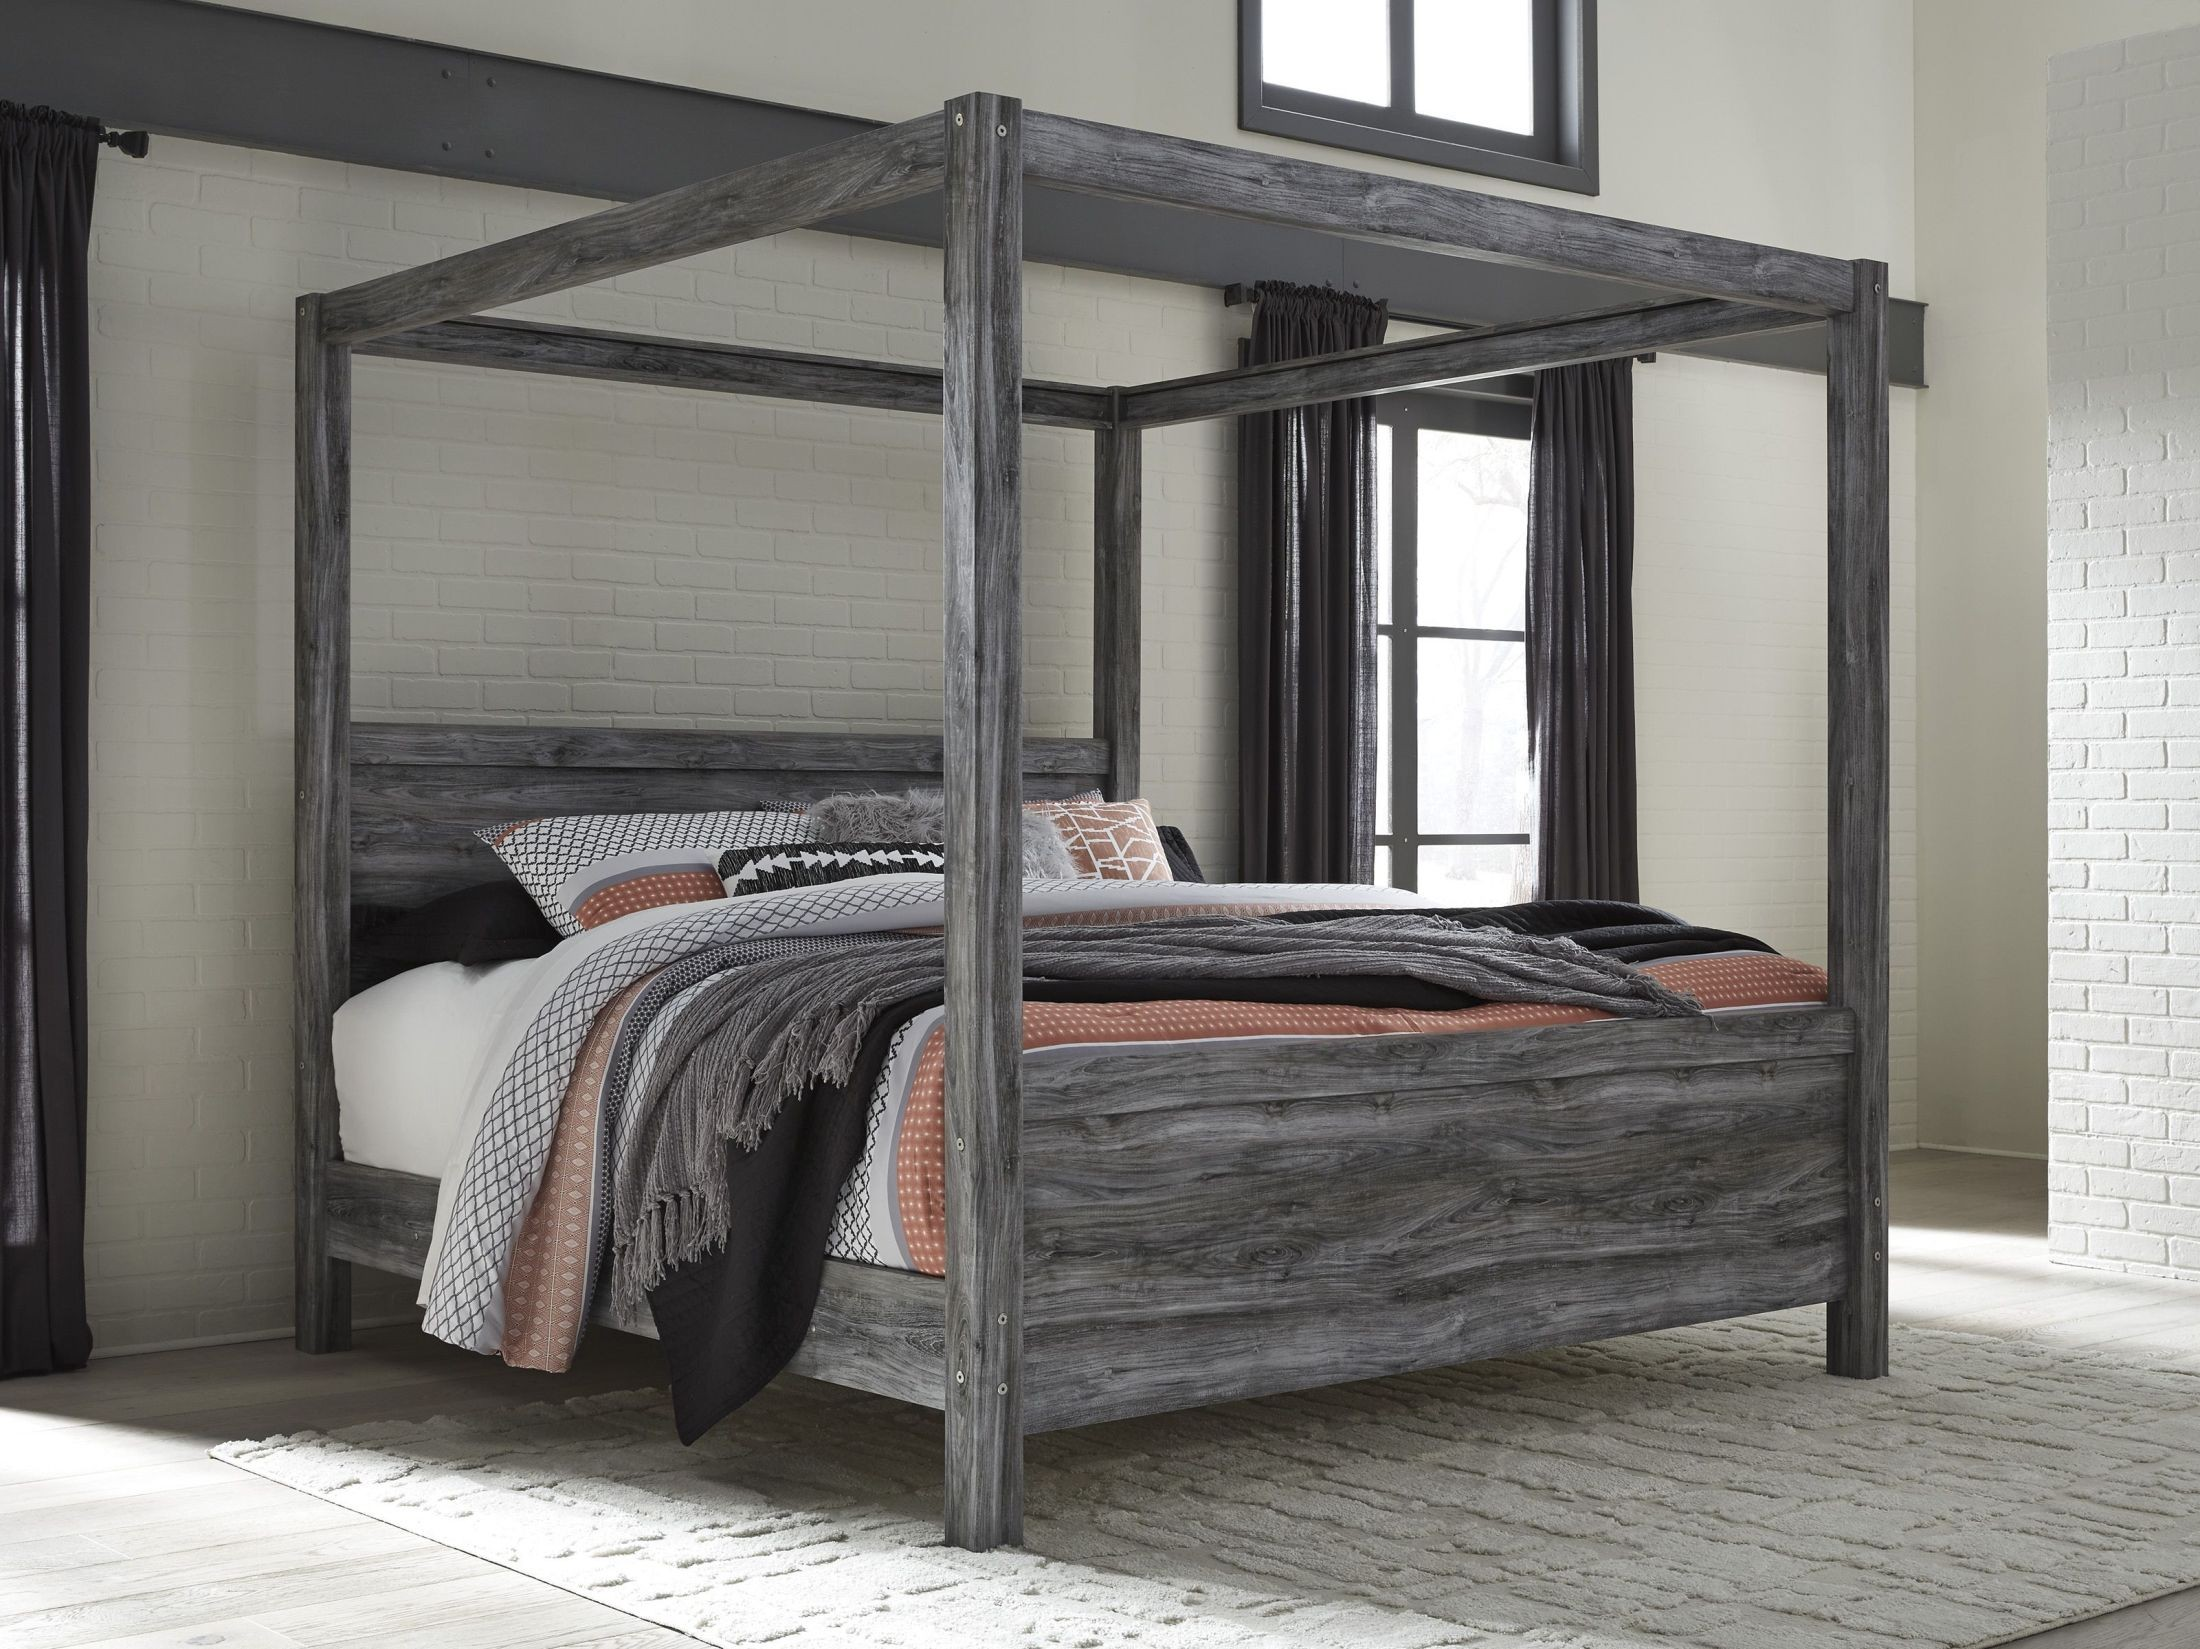 King Canopy Bed Frame Amp California King Canopy Bedroom